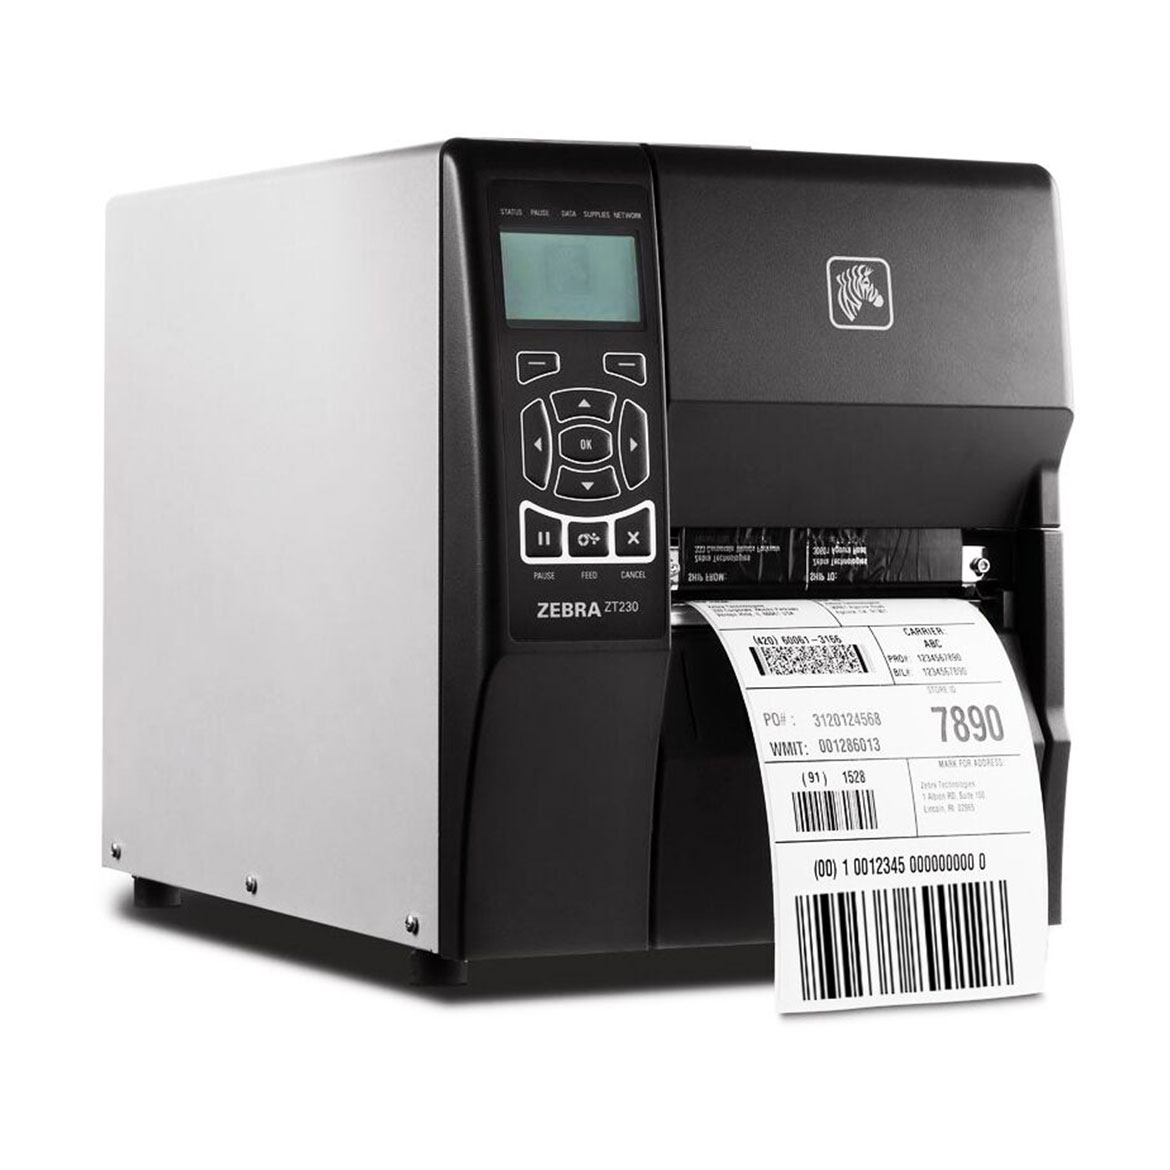 Zebra ZD420 Series Label Printers